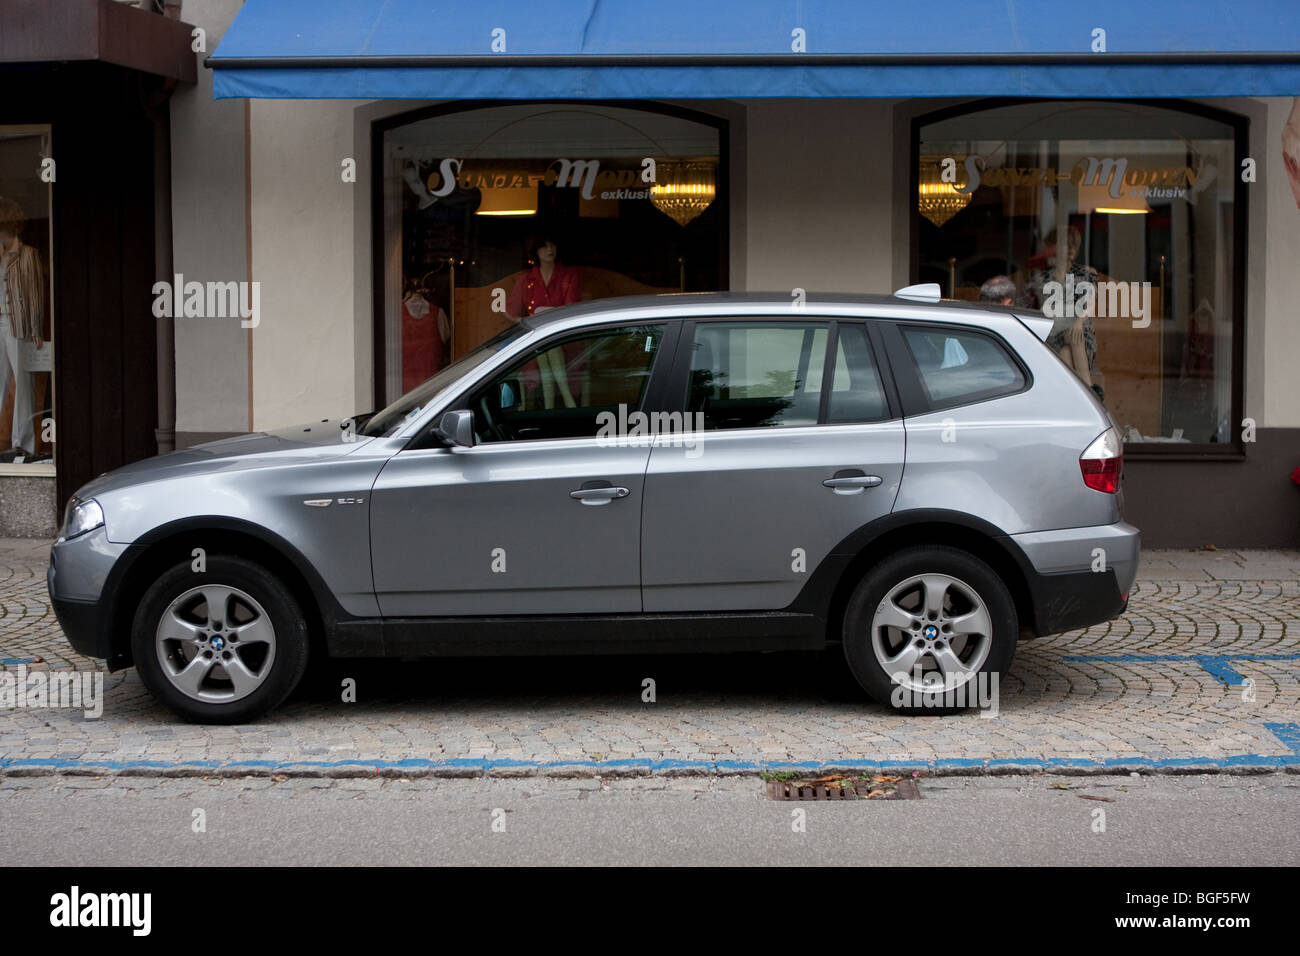 BMW X5 Car Parked in Bavaria, Germany - Stock Image